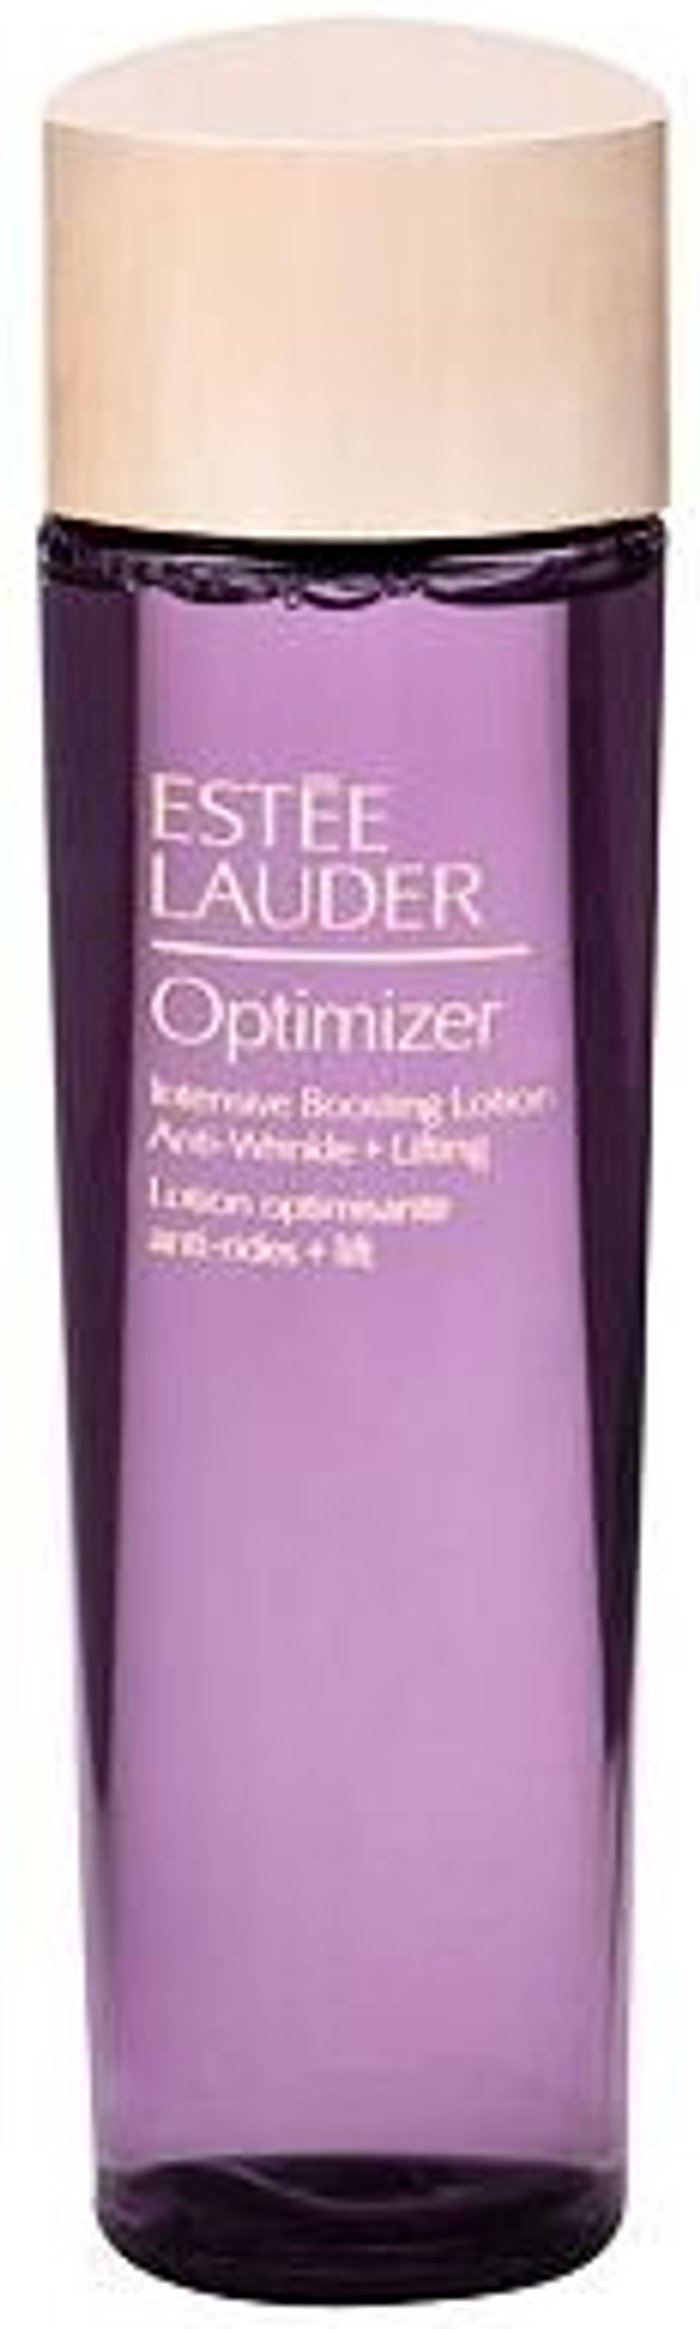 Estée Lauder Estée Lauder Estée Lauder Optimizer Intensive Boosting Lotion (200ml)